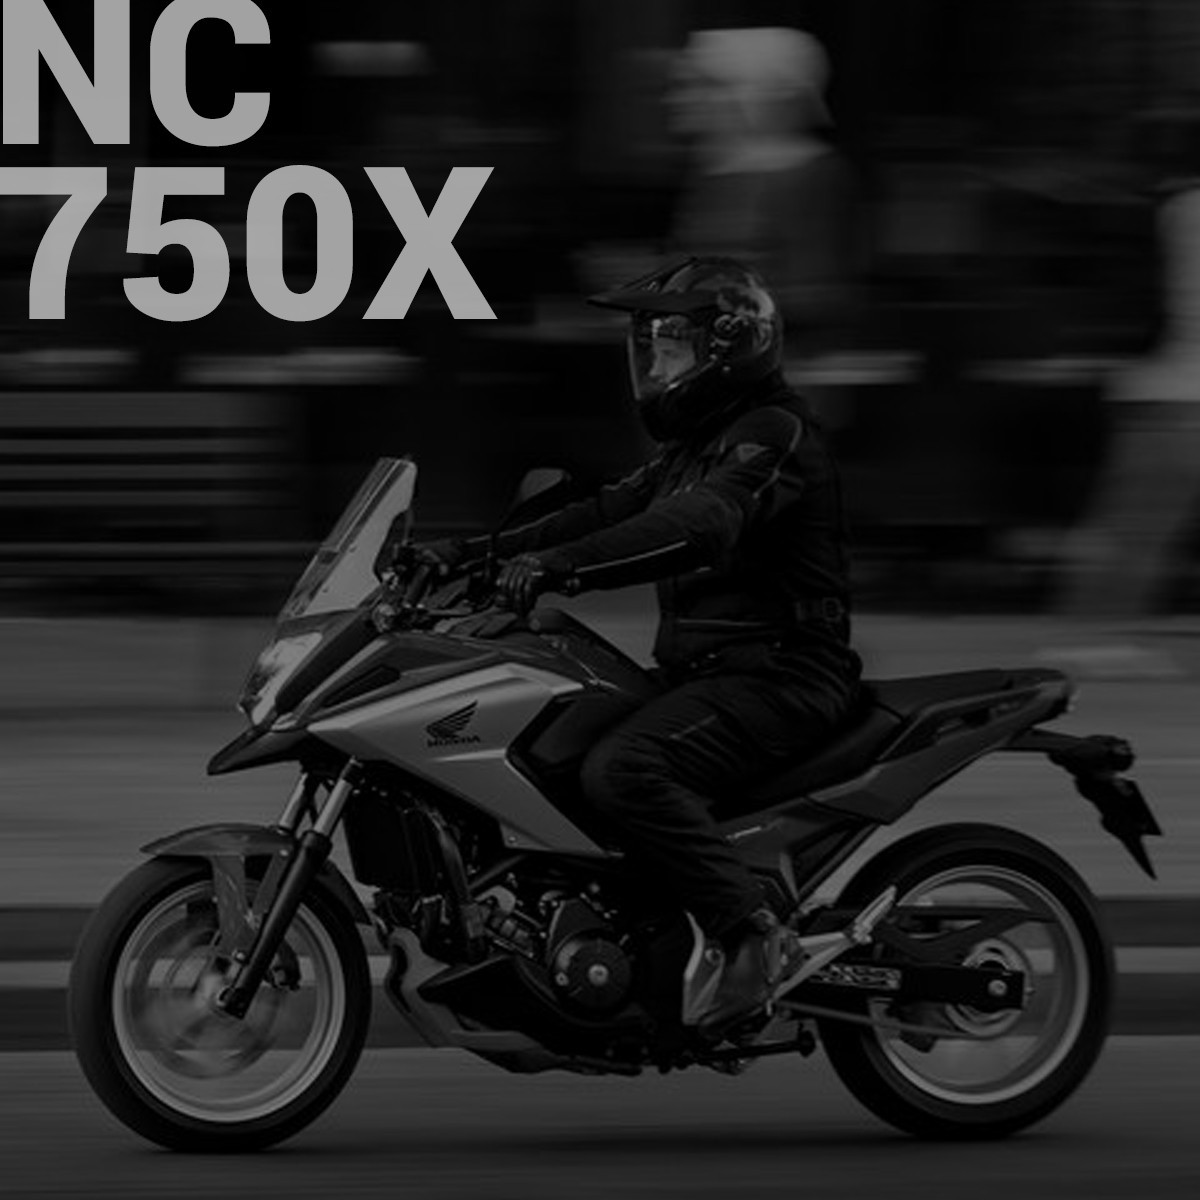 NC750X abs - Traction ControlBox Foto con TXT